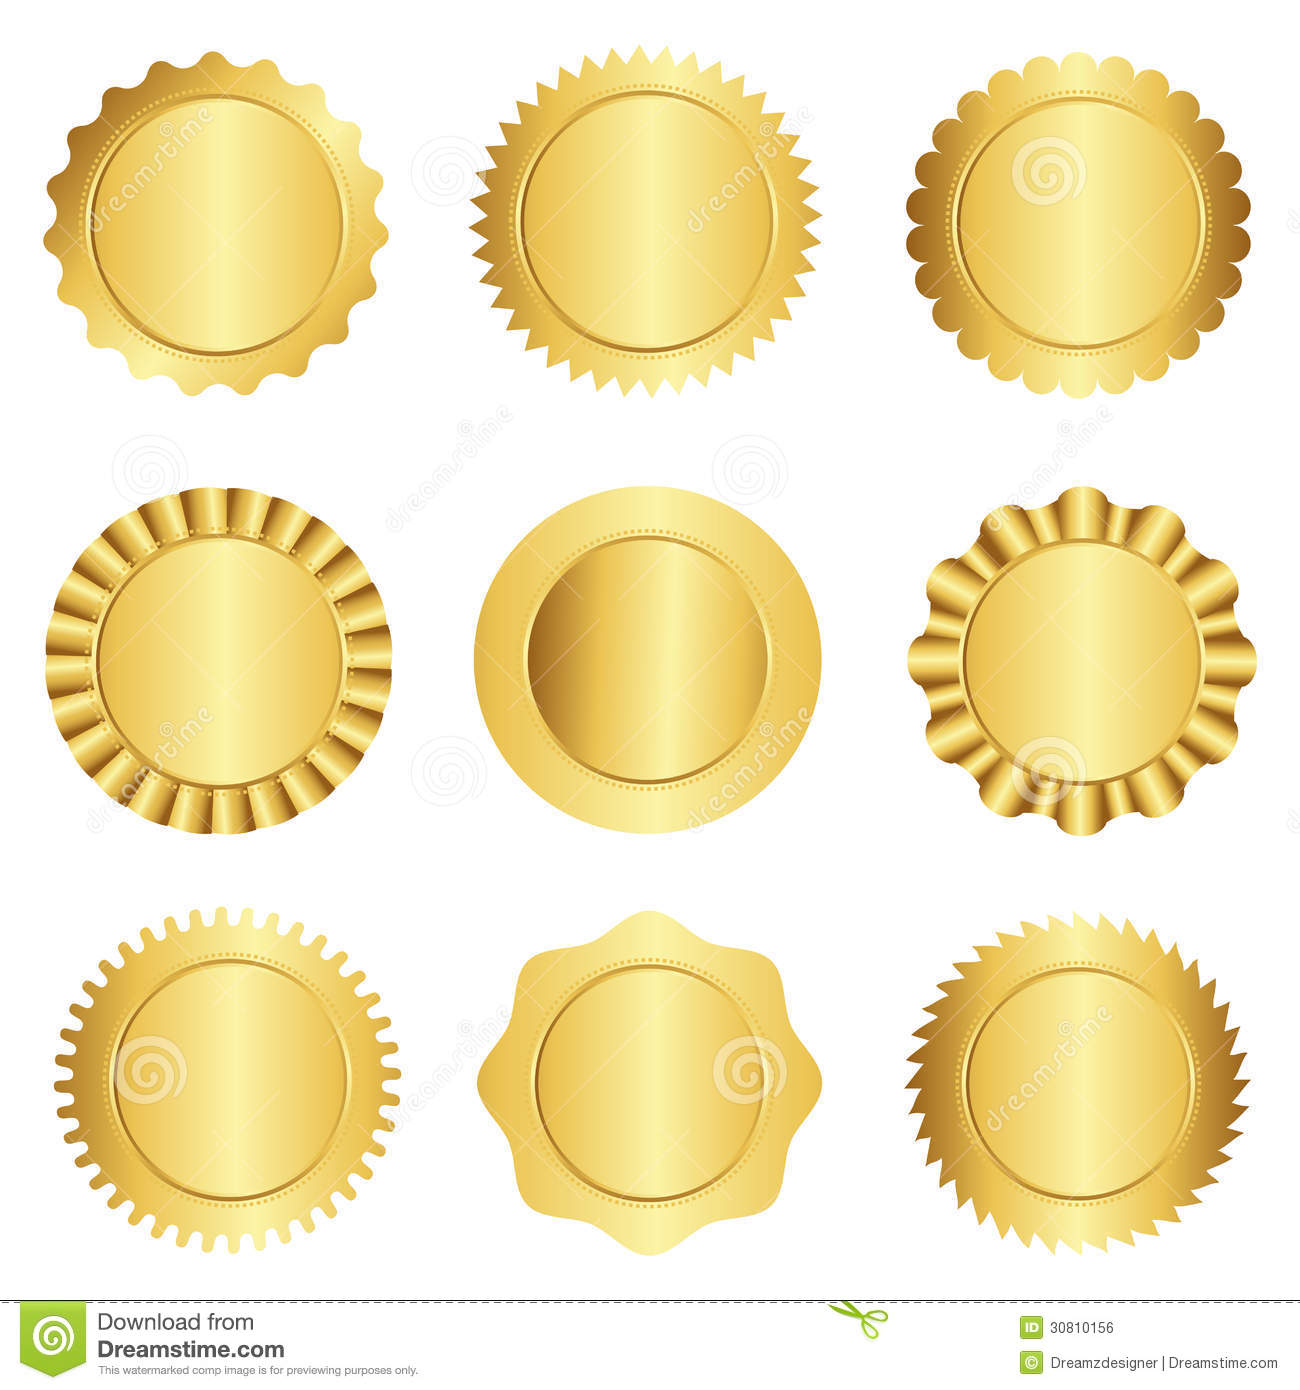 Set Of Different Gold Approval Seal Stamp Badge And Rosette Shapes Isolated On White